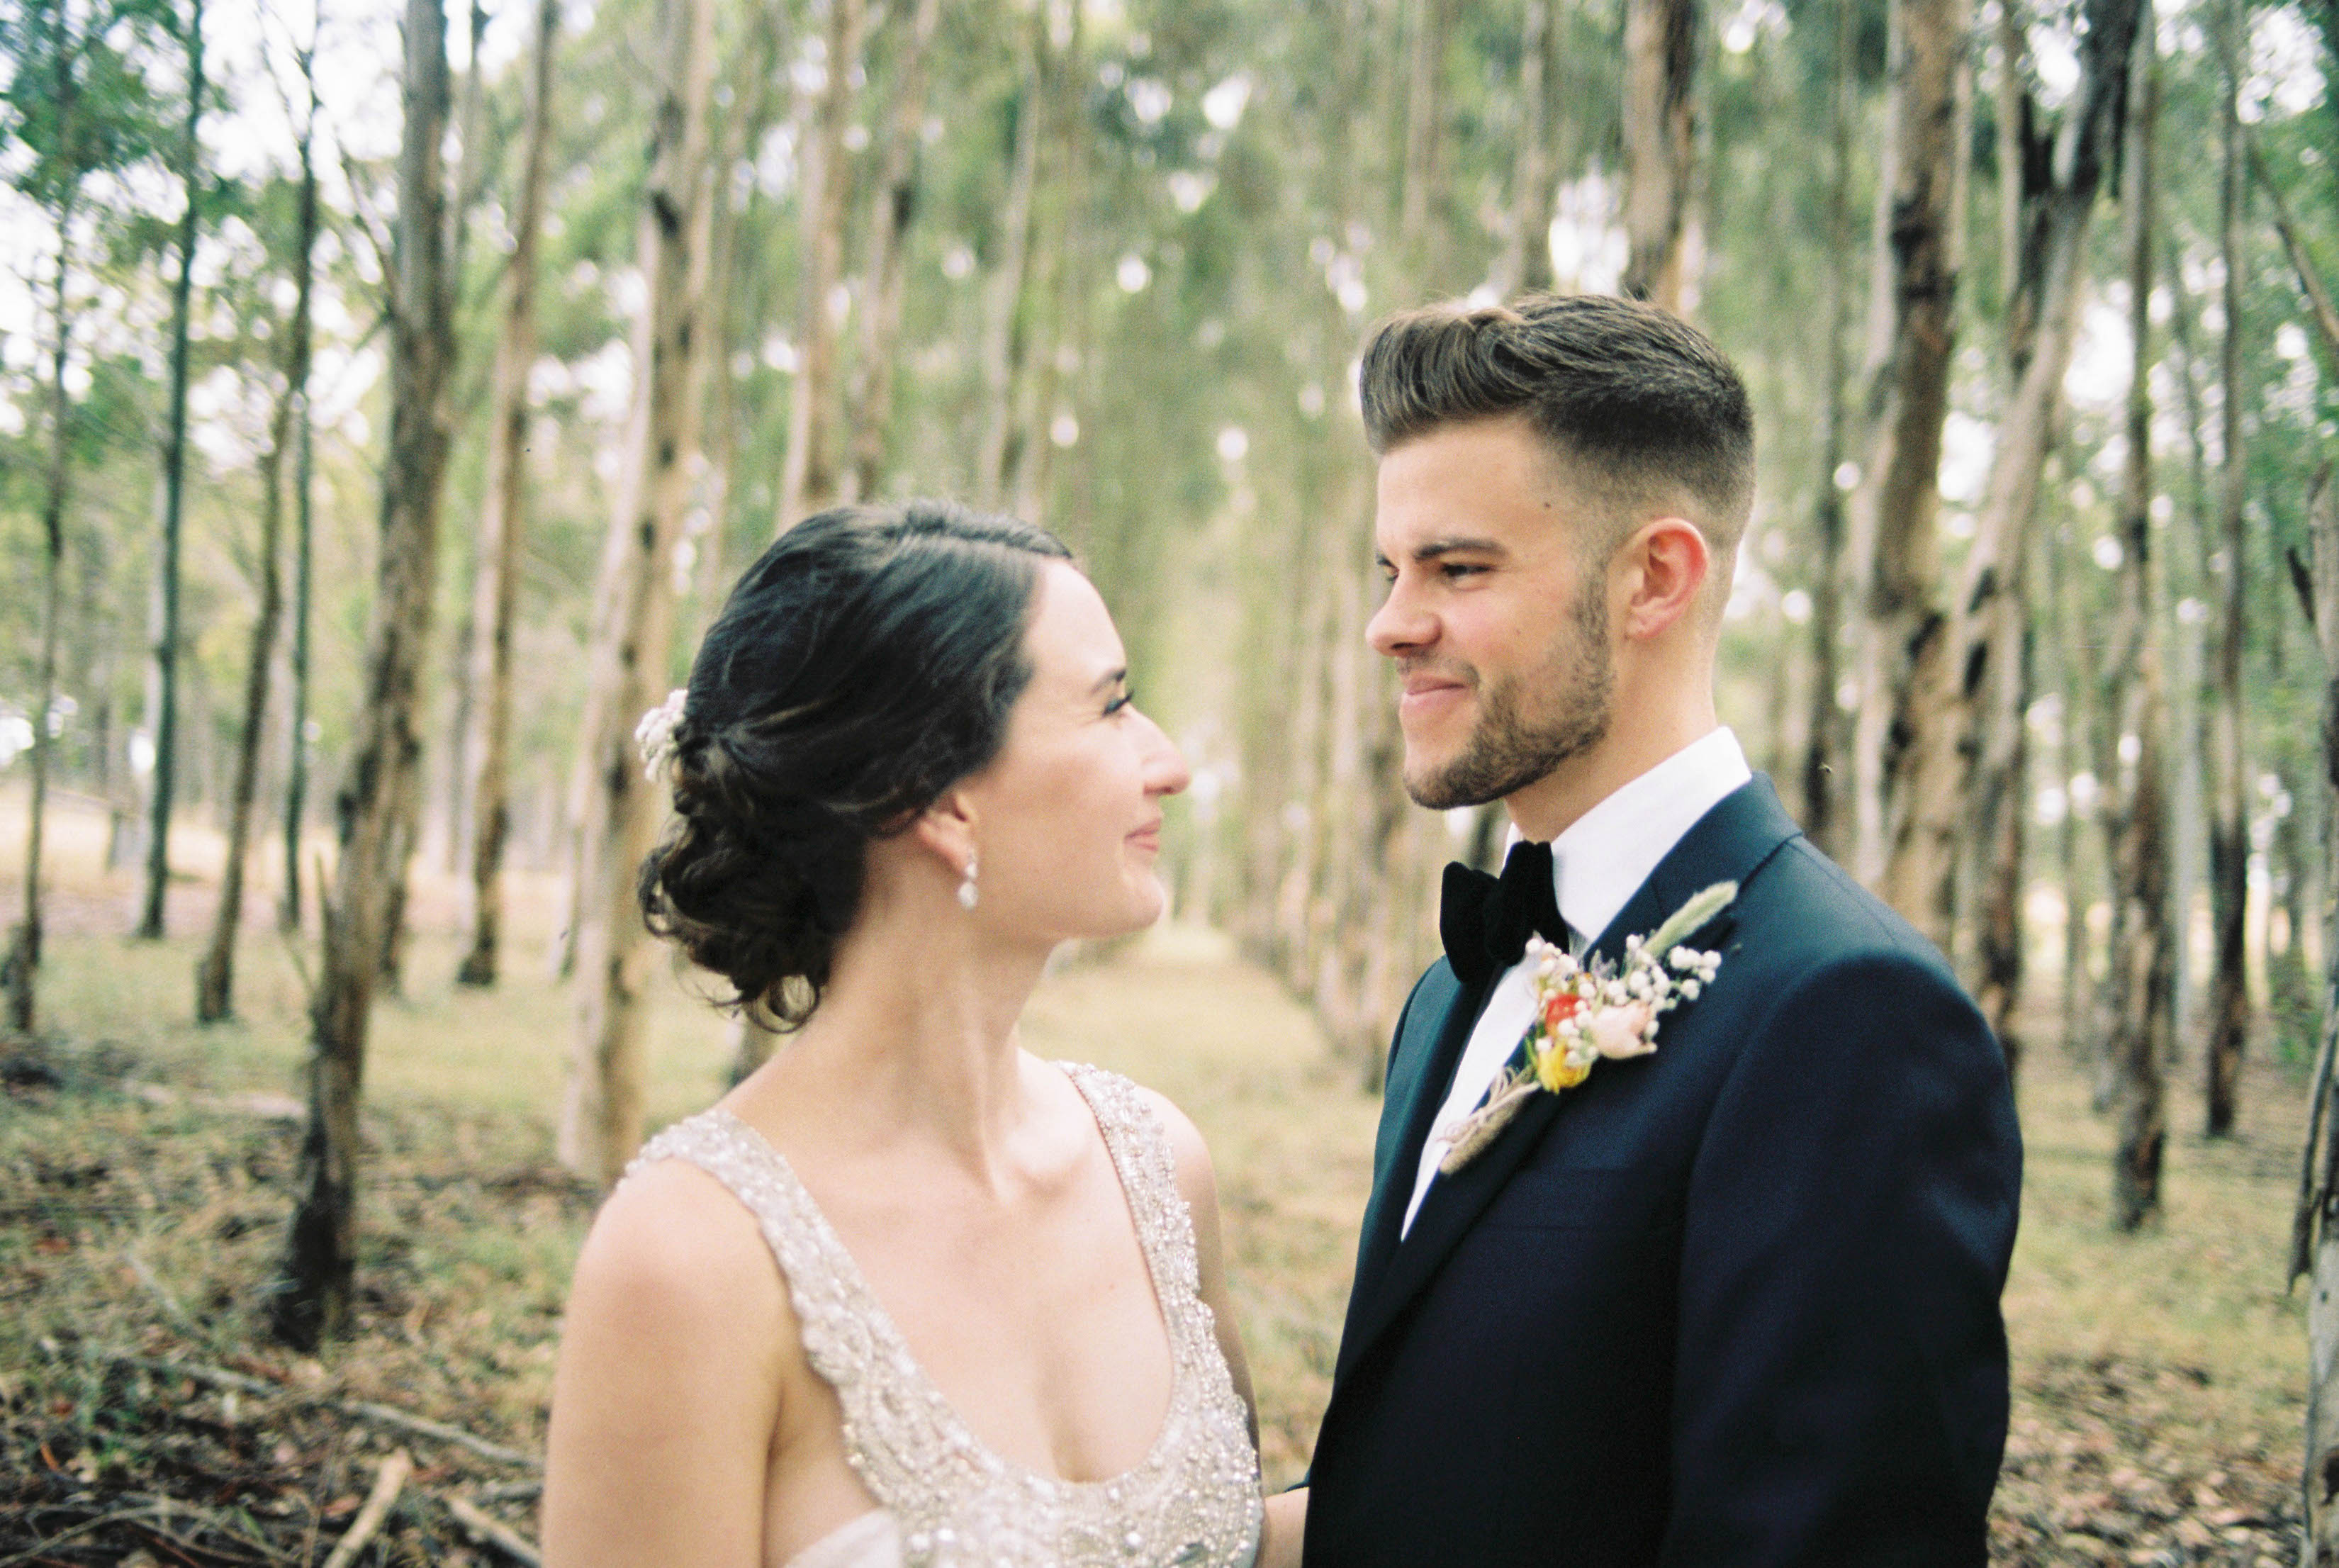 Authentic wedding portraits of the bride and groom smiling at each other in a blue gum plantation